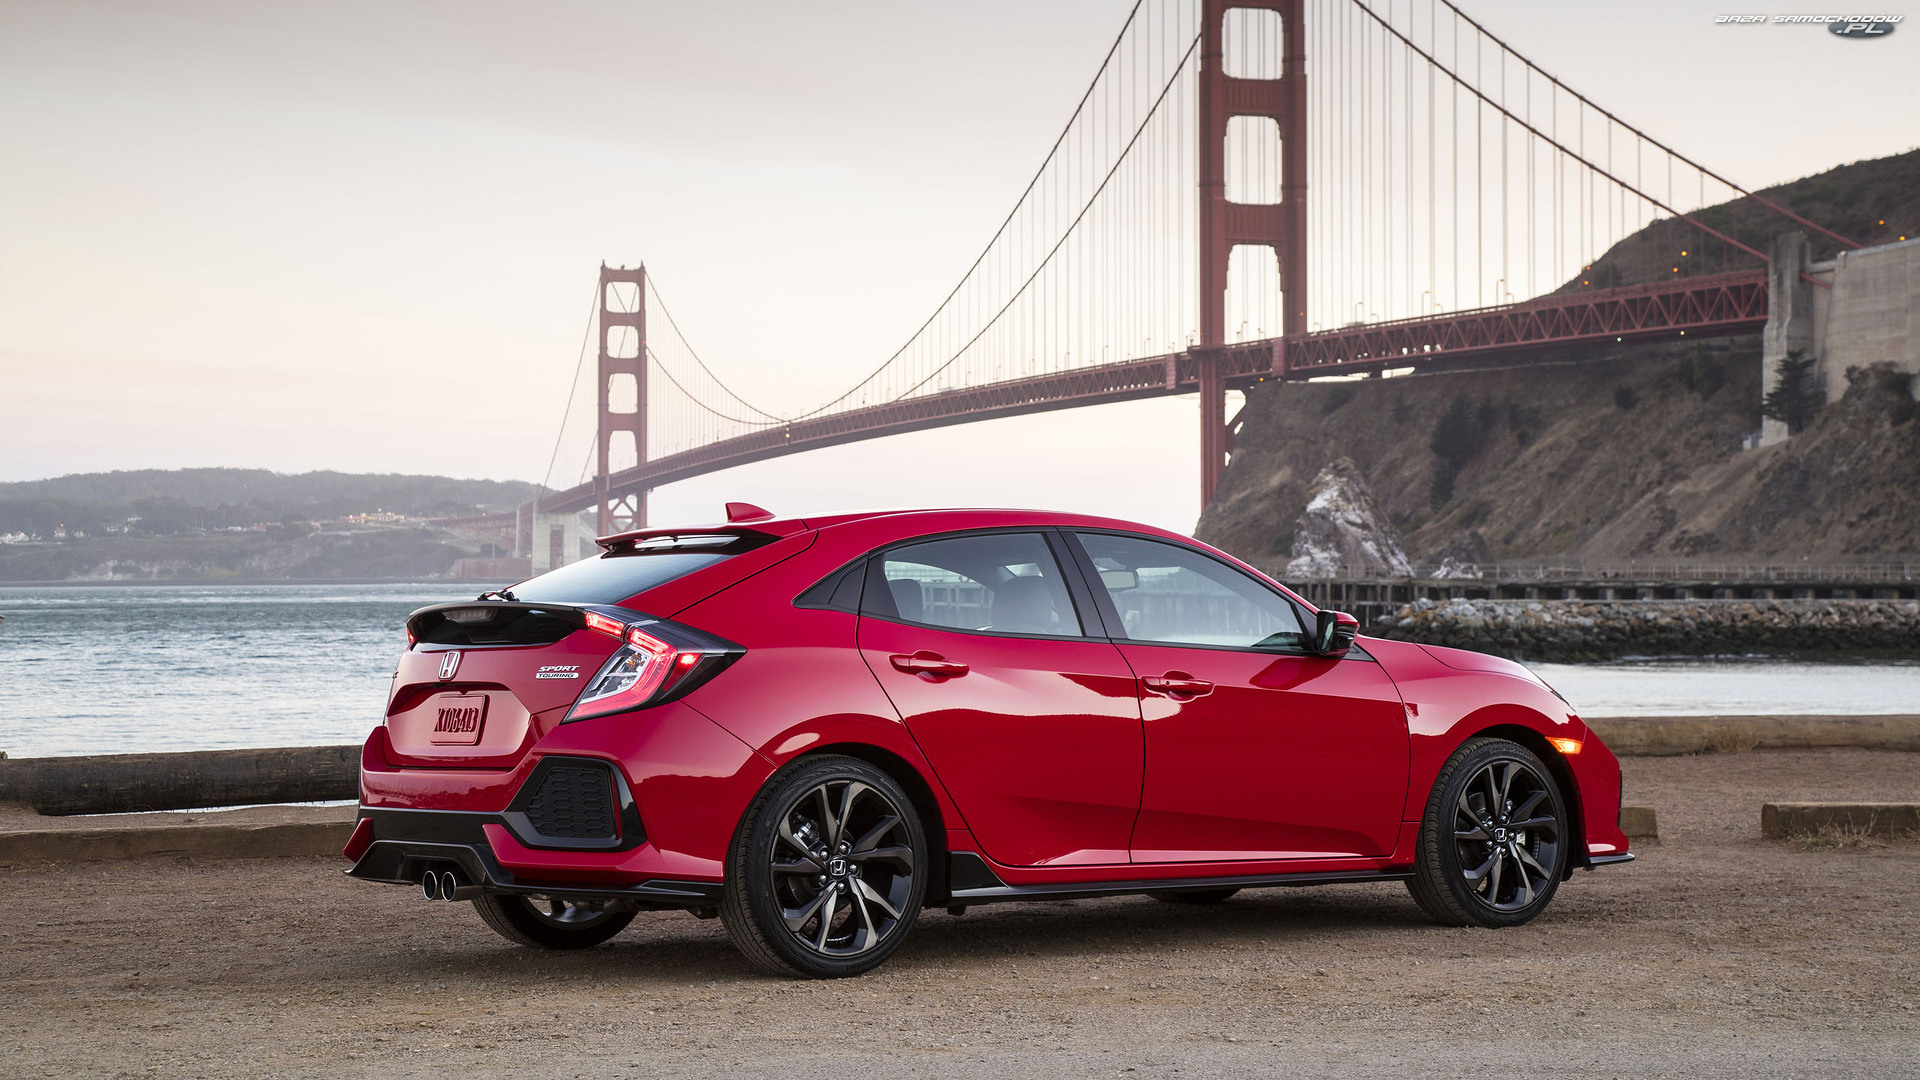 Honda Civic, Hatchback